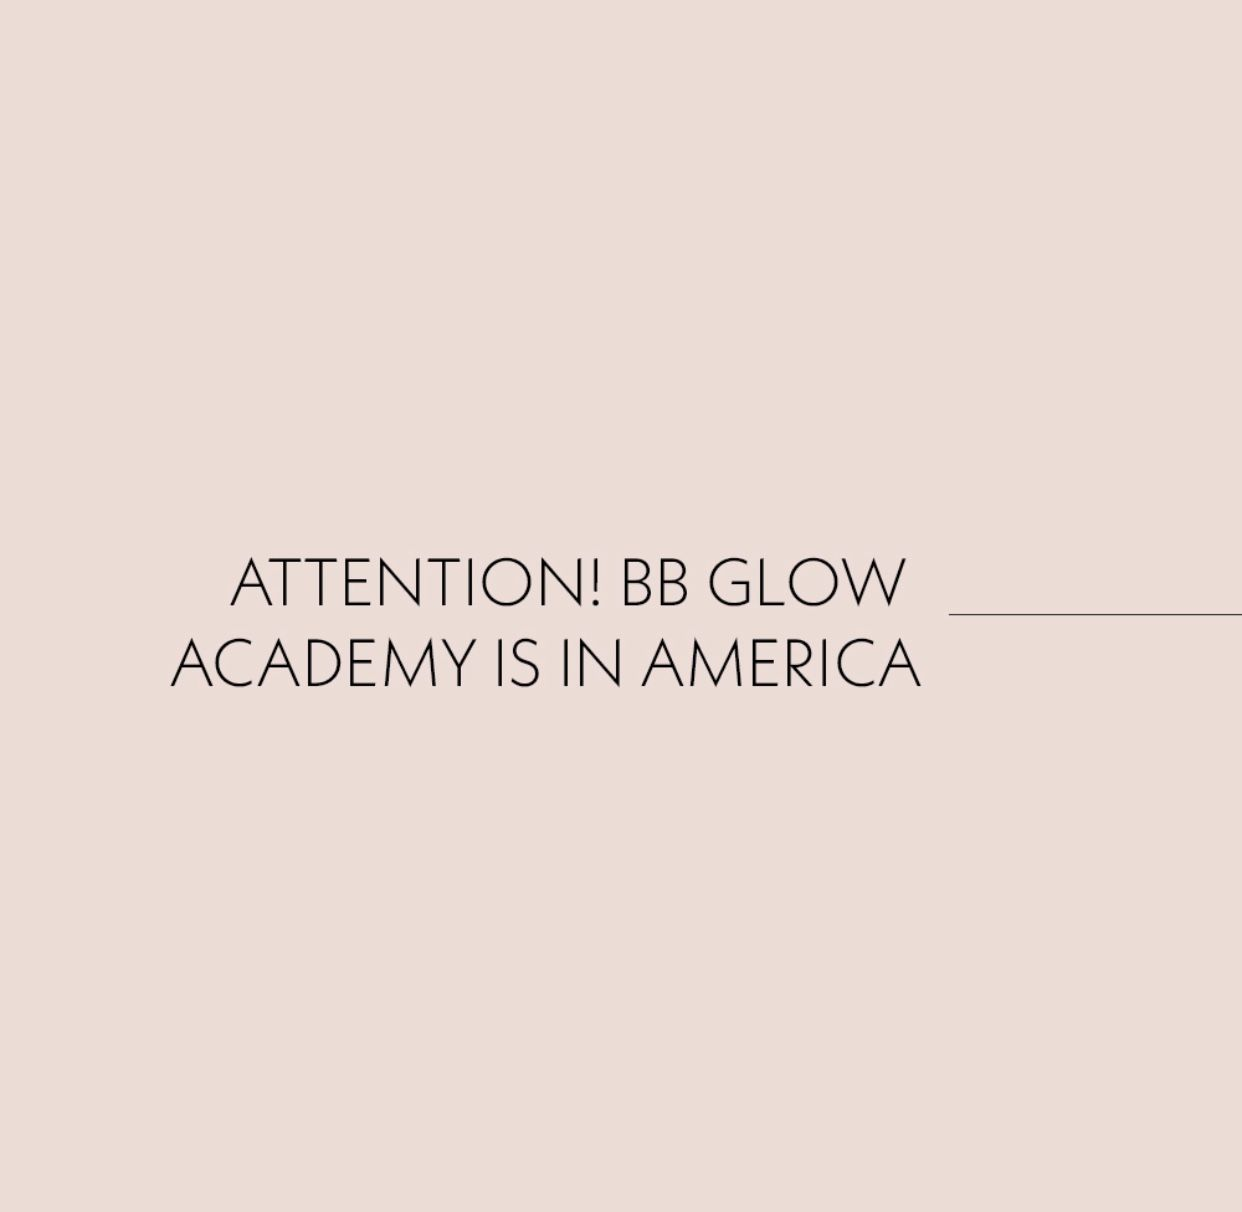 Yes- you read that right- BB Glow Academy is in America